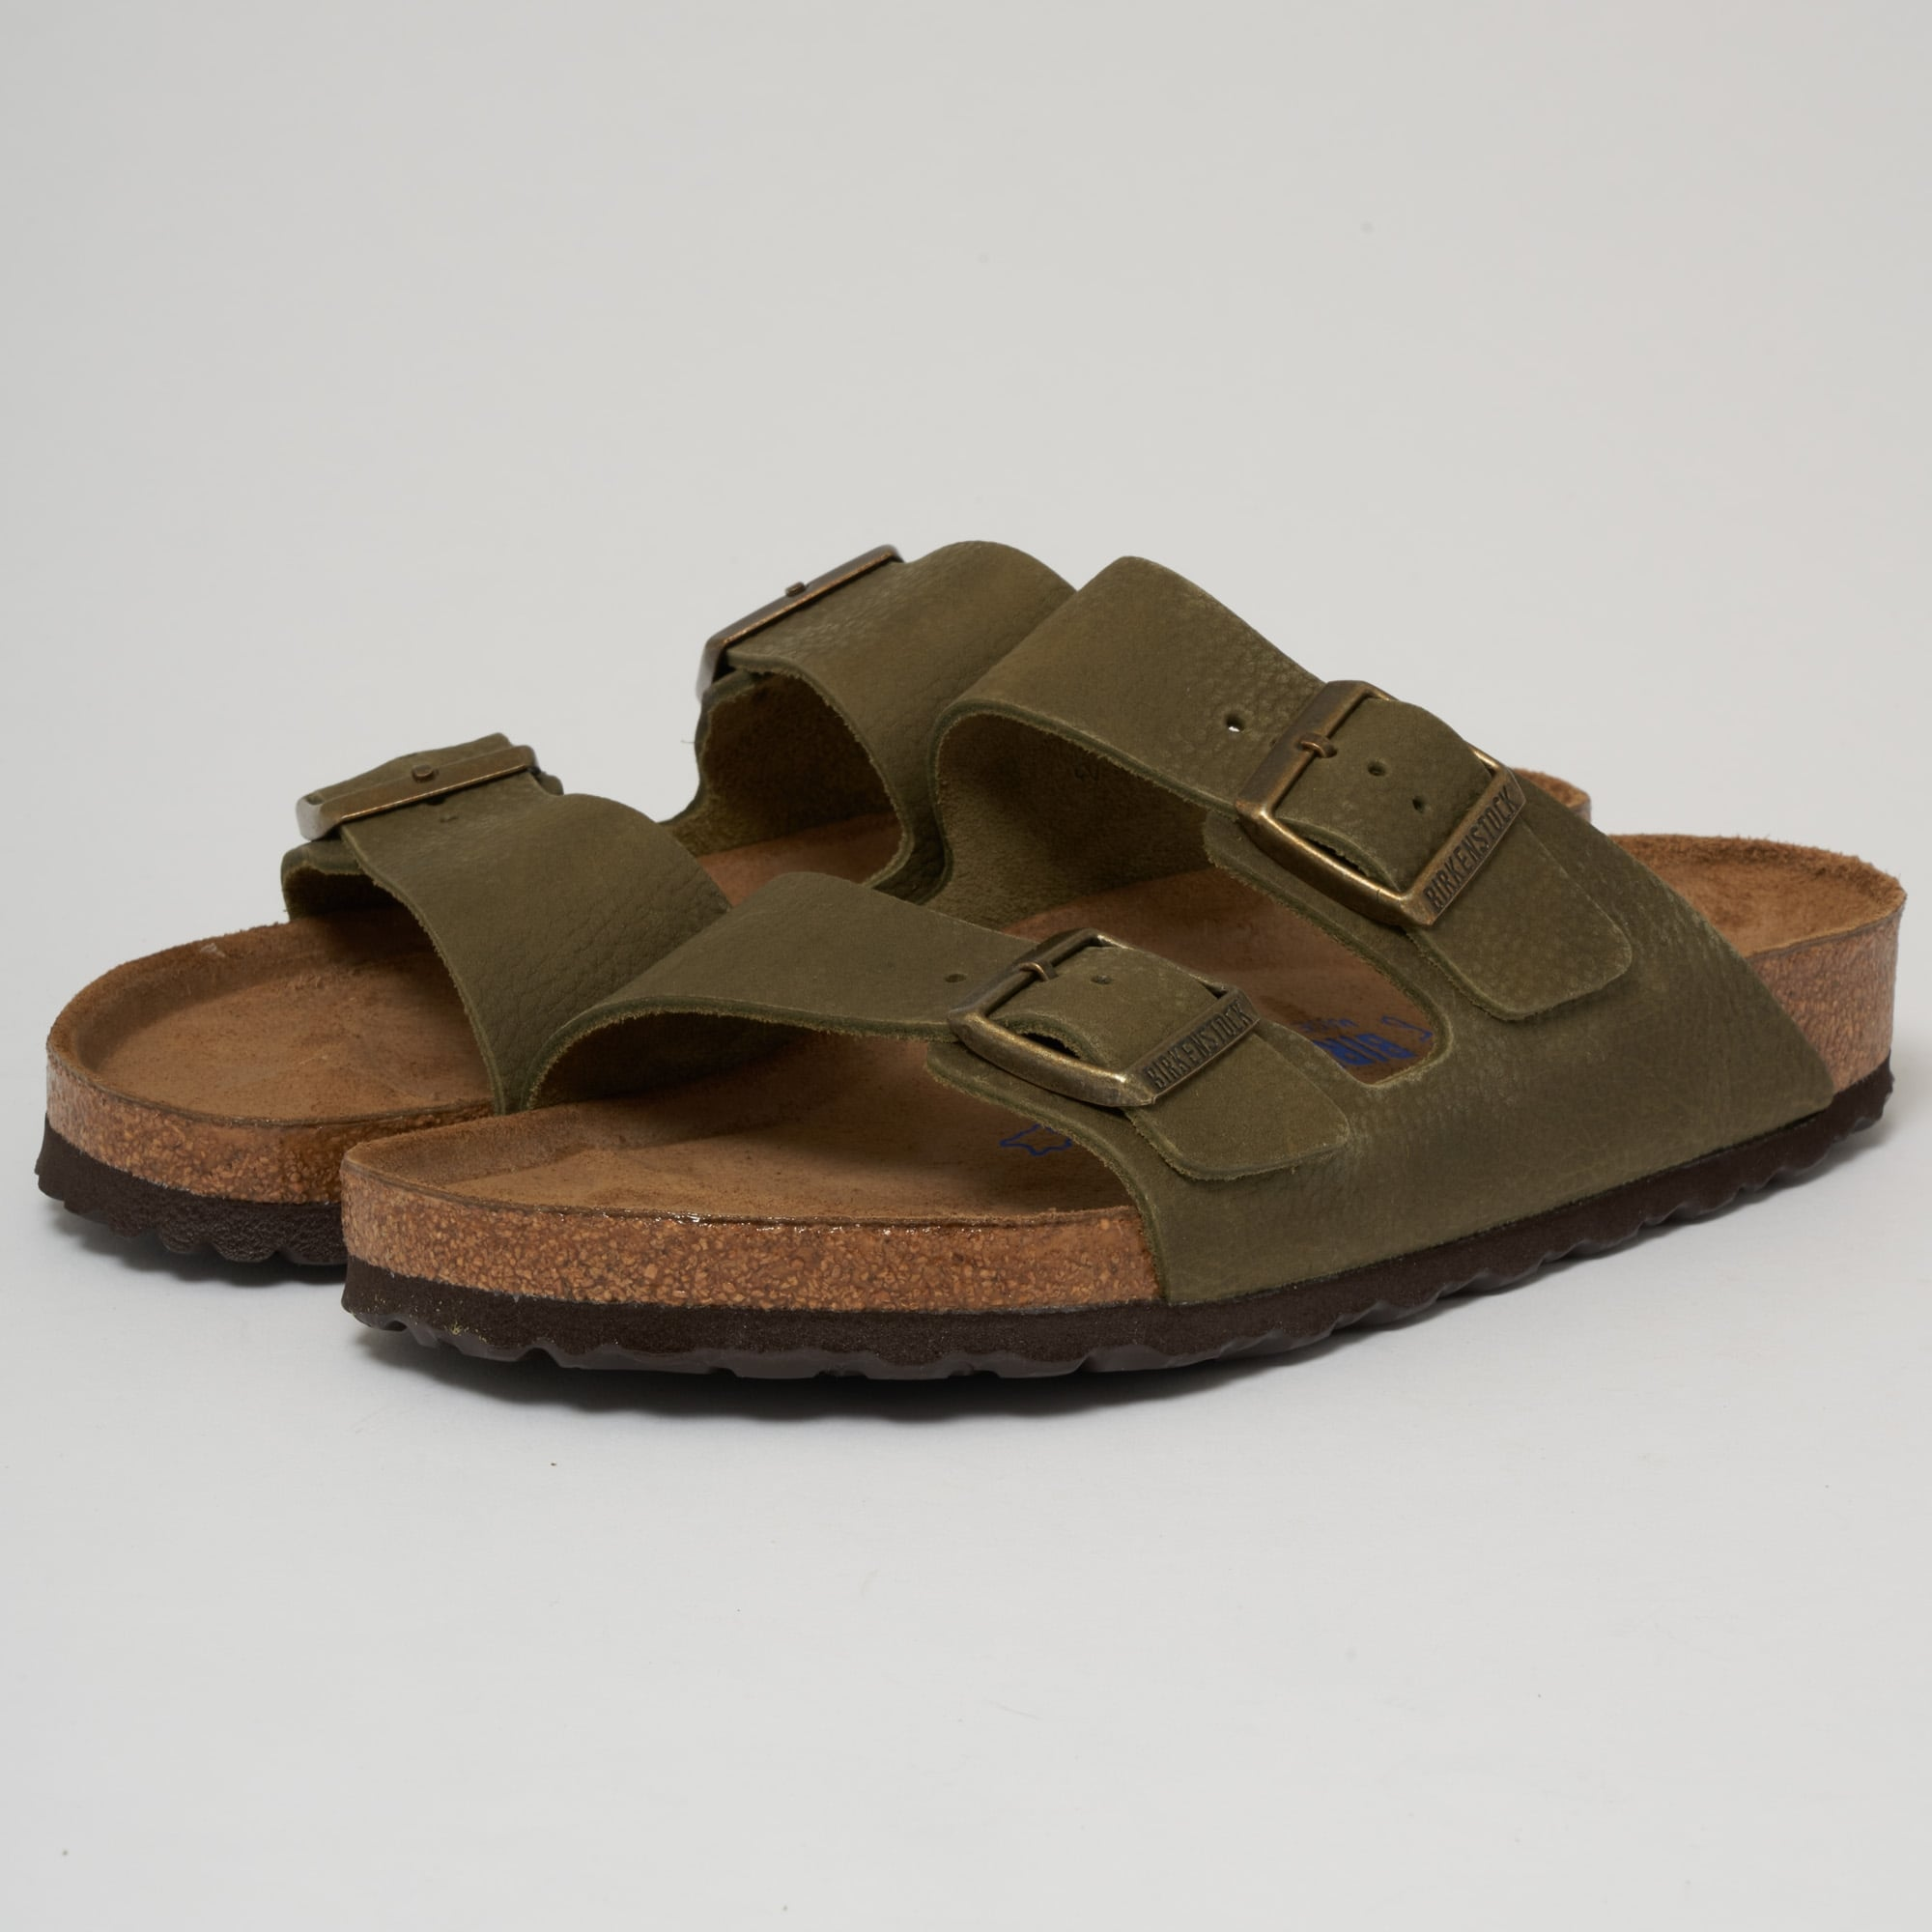 4ad1e313c Birkenstock Arizona Sandals Steer Khaki